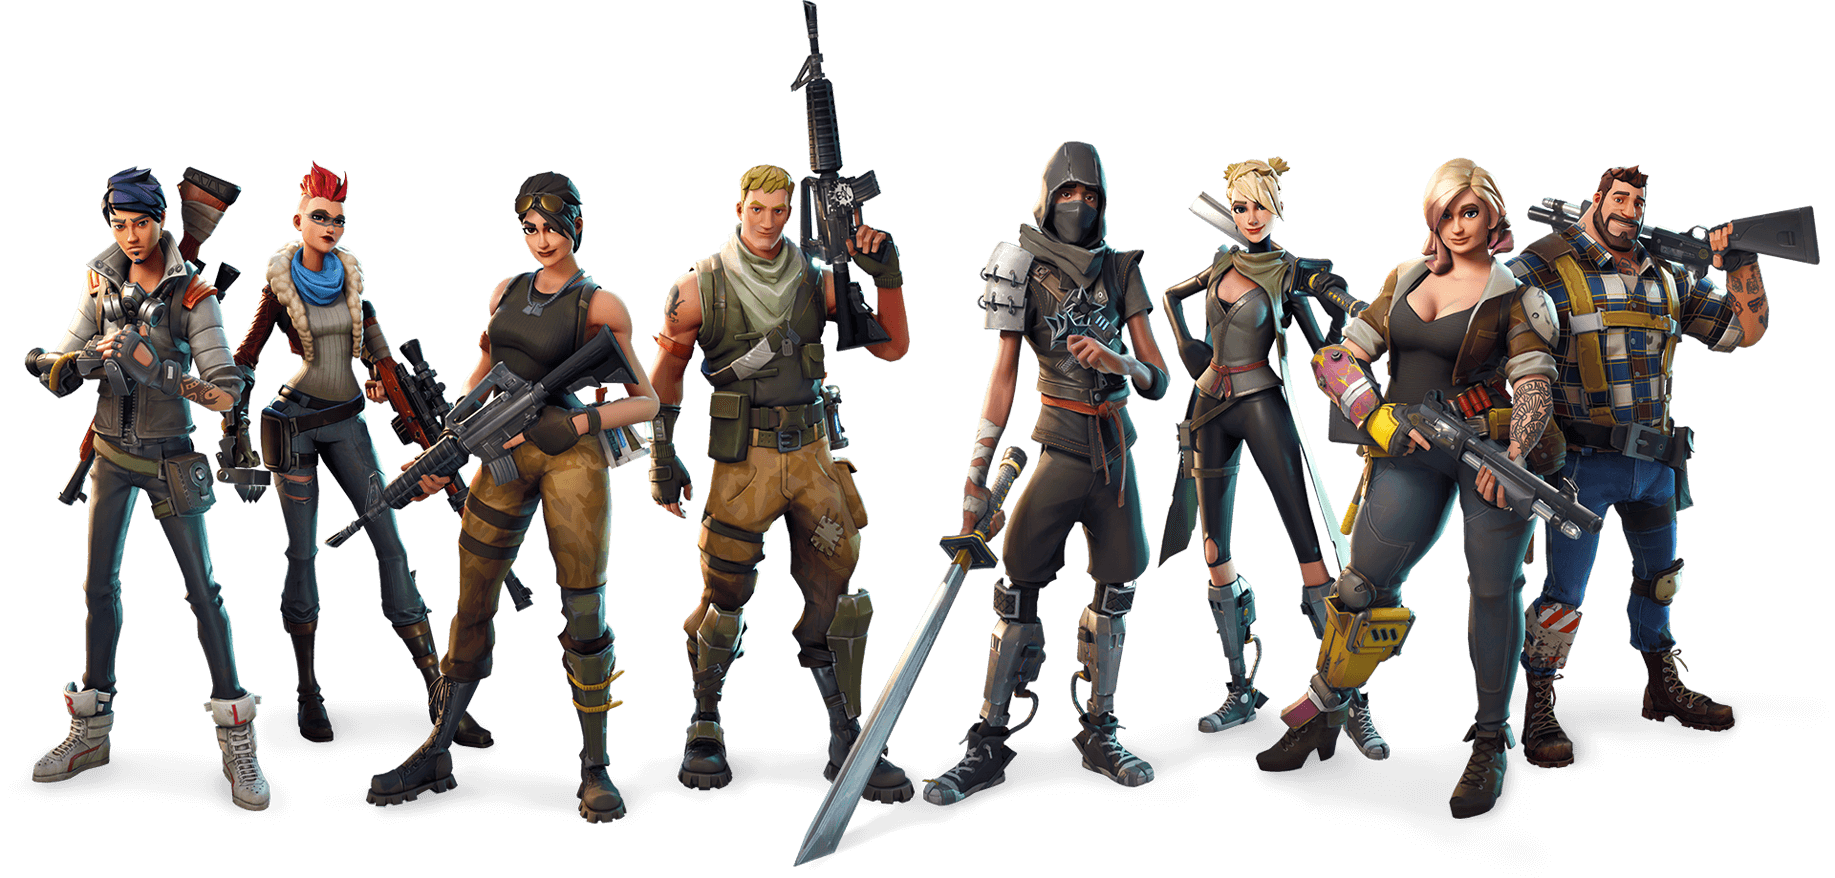 Fortnite png. Image class characters wiki